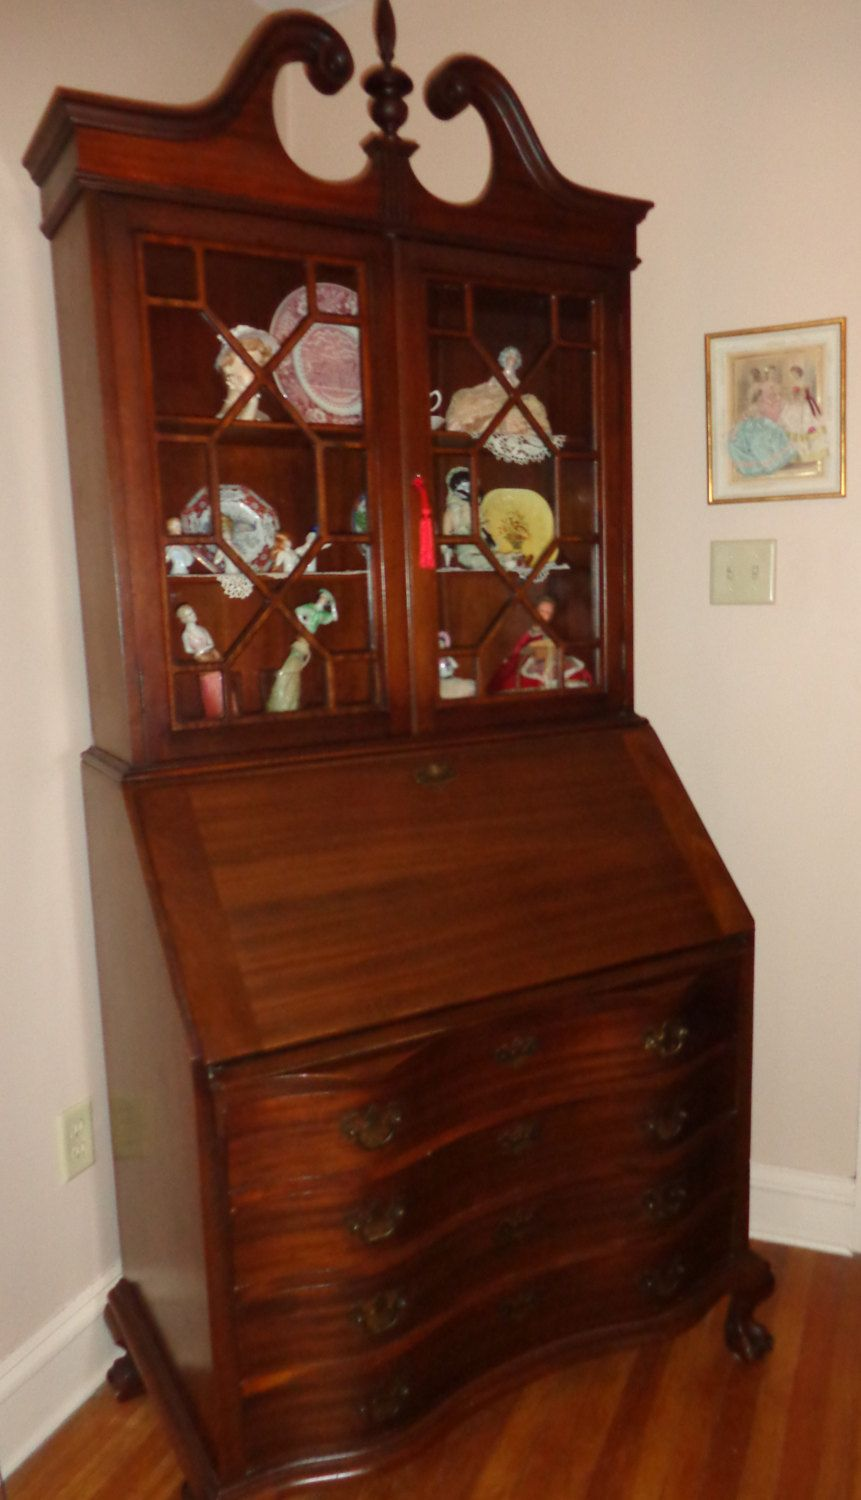 Preferred Antique Drop Front Secretary Desk With Bookcase | Antique Furniture AN38